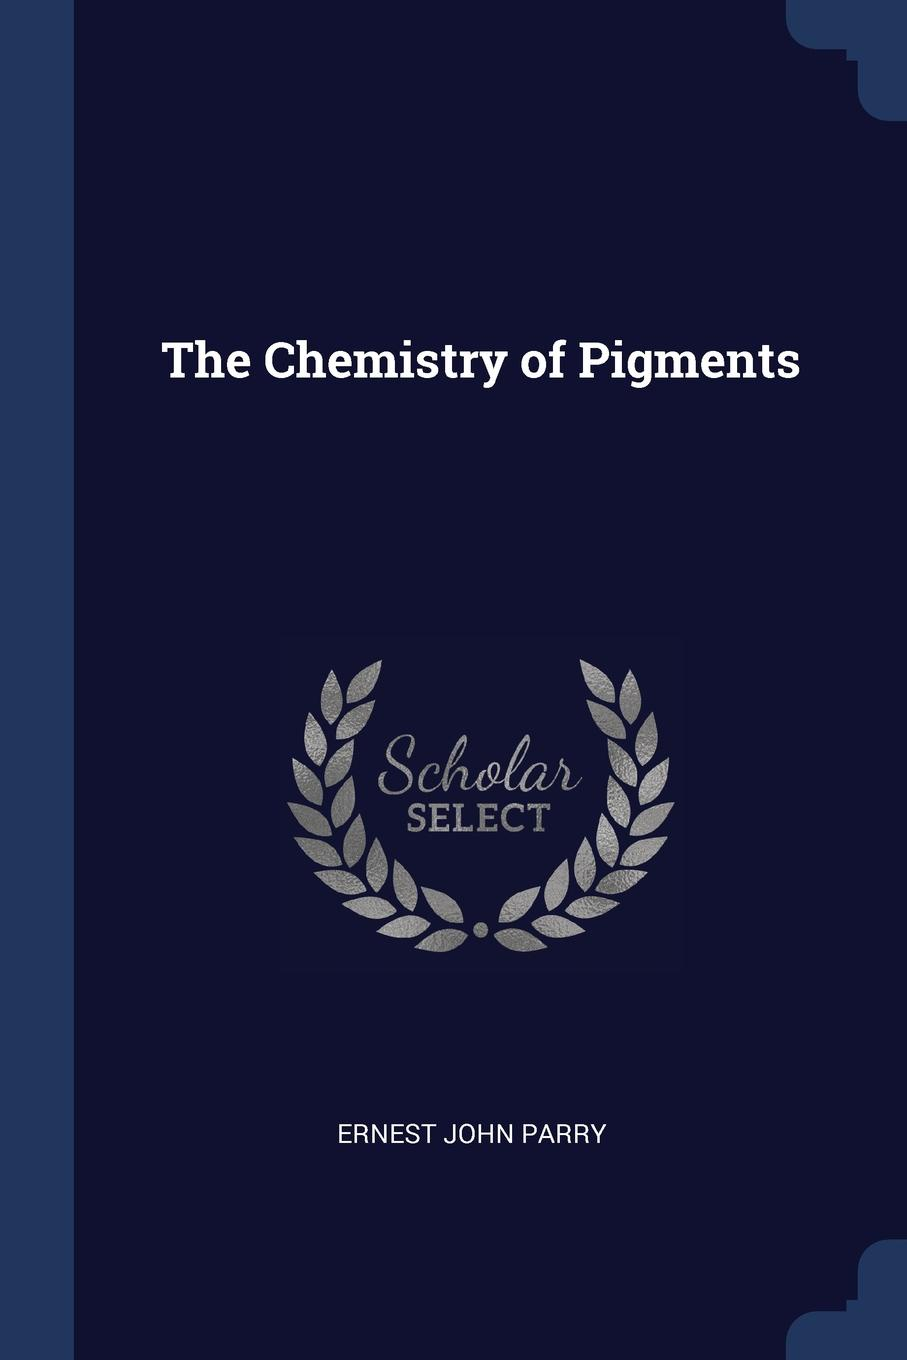 Ernest John Parry The Chemistry of Pigments